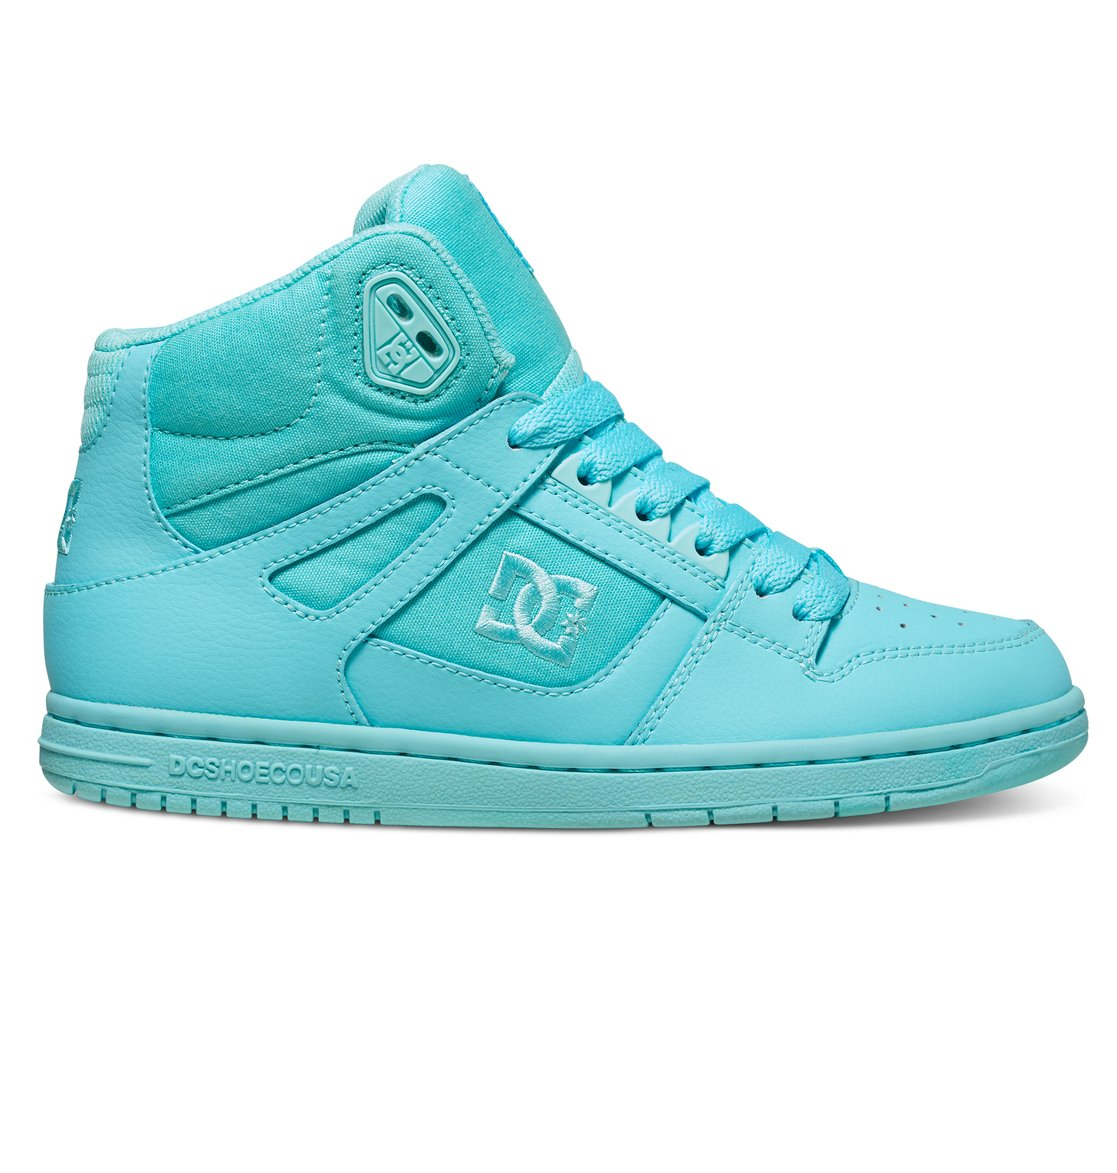 dc shoes s shoes rebound high 302164